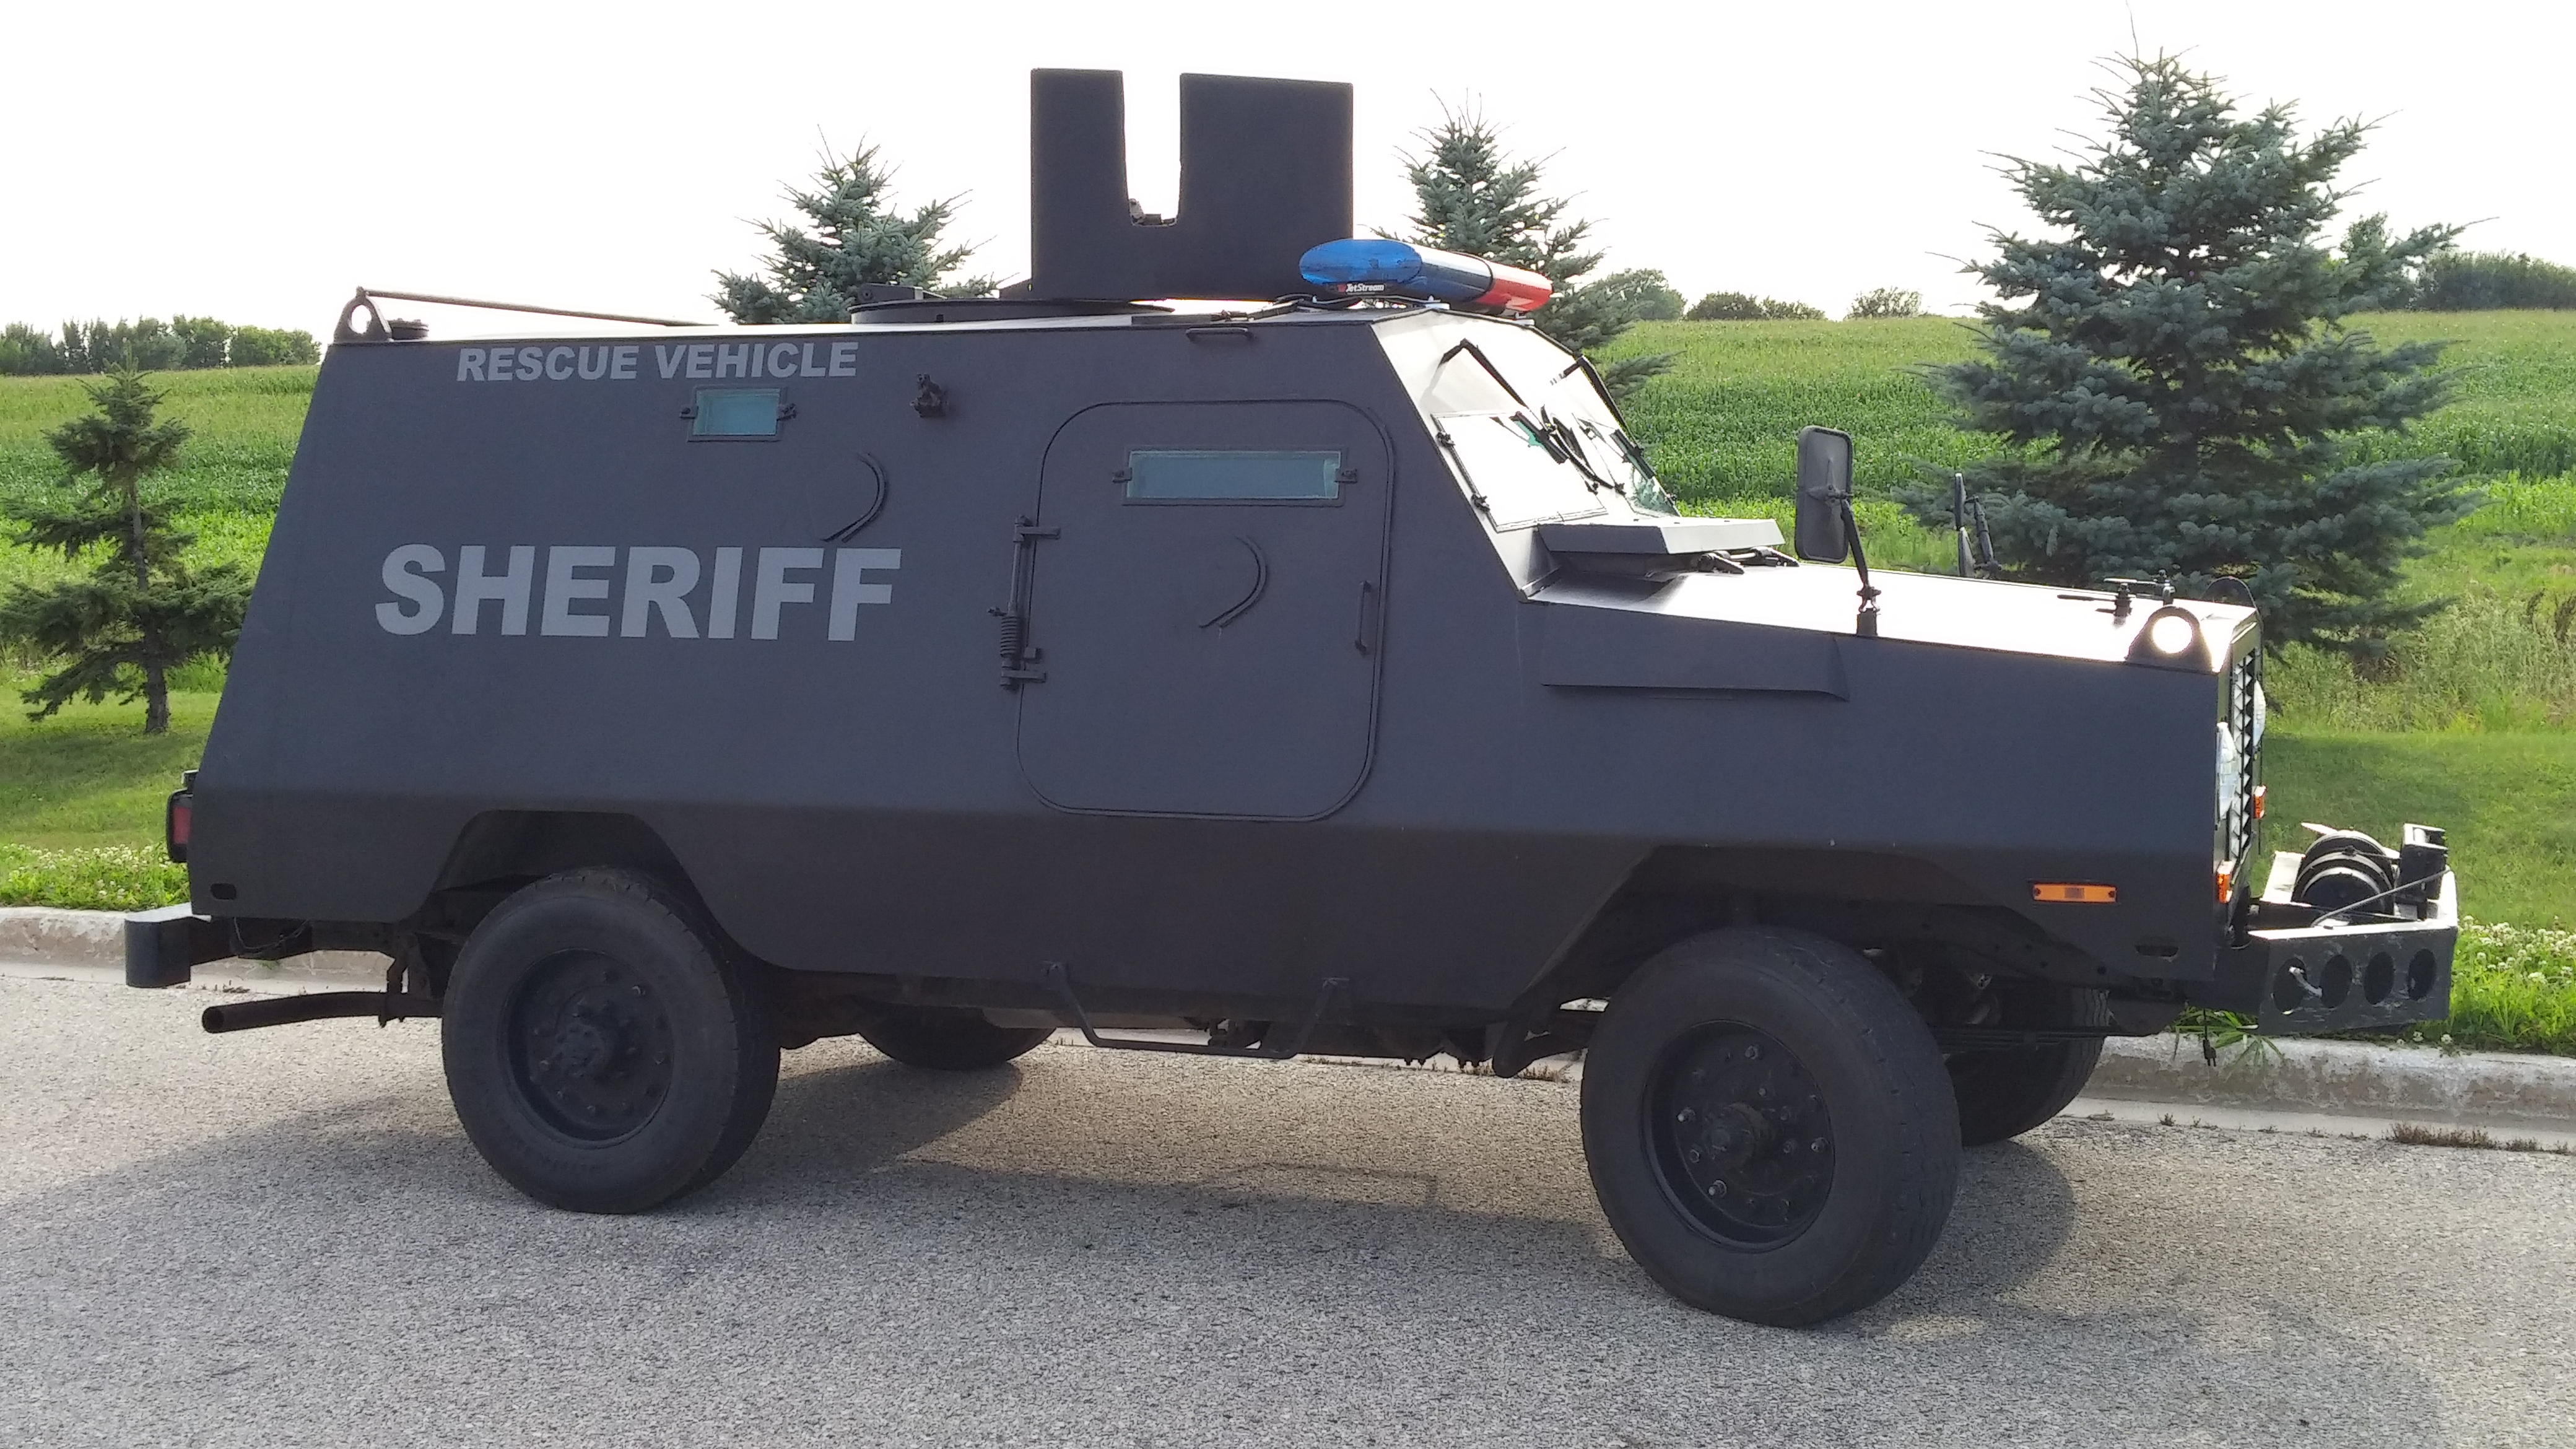 Sheriff SWAT vehicle parked on road